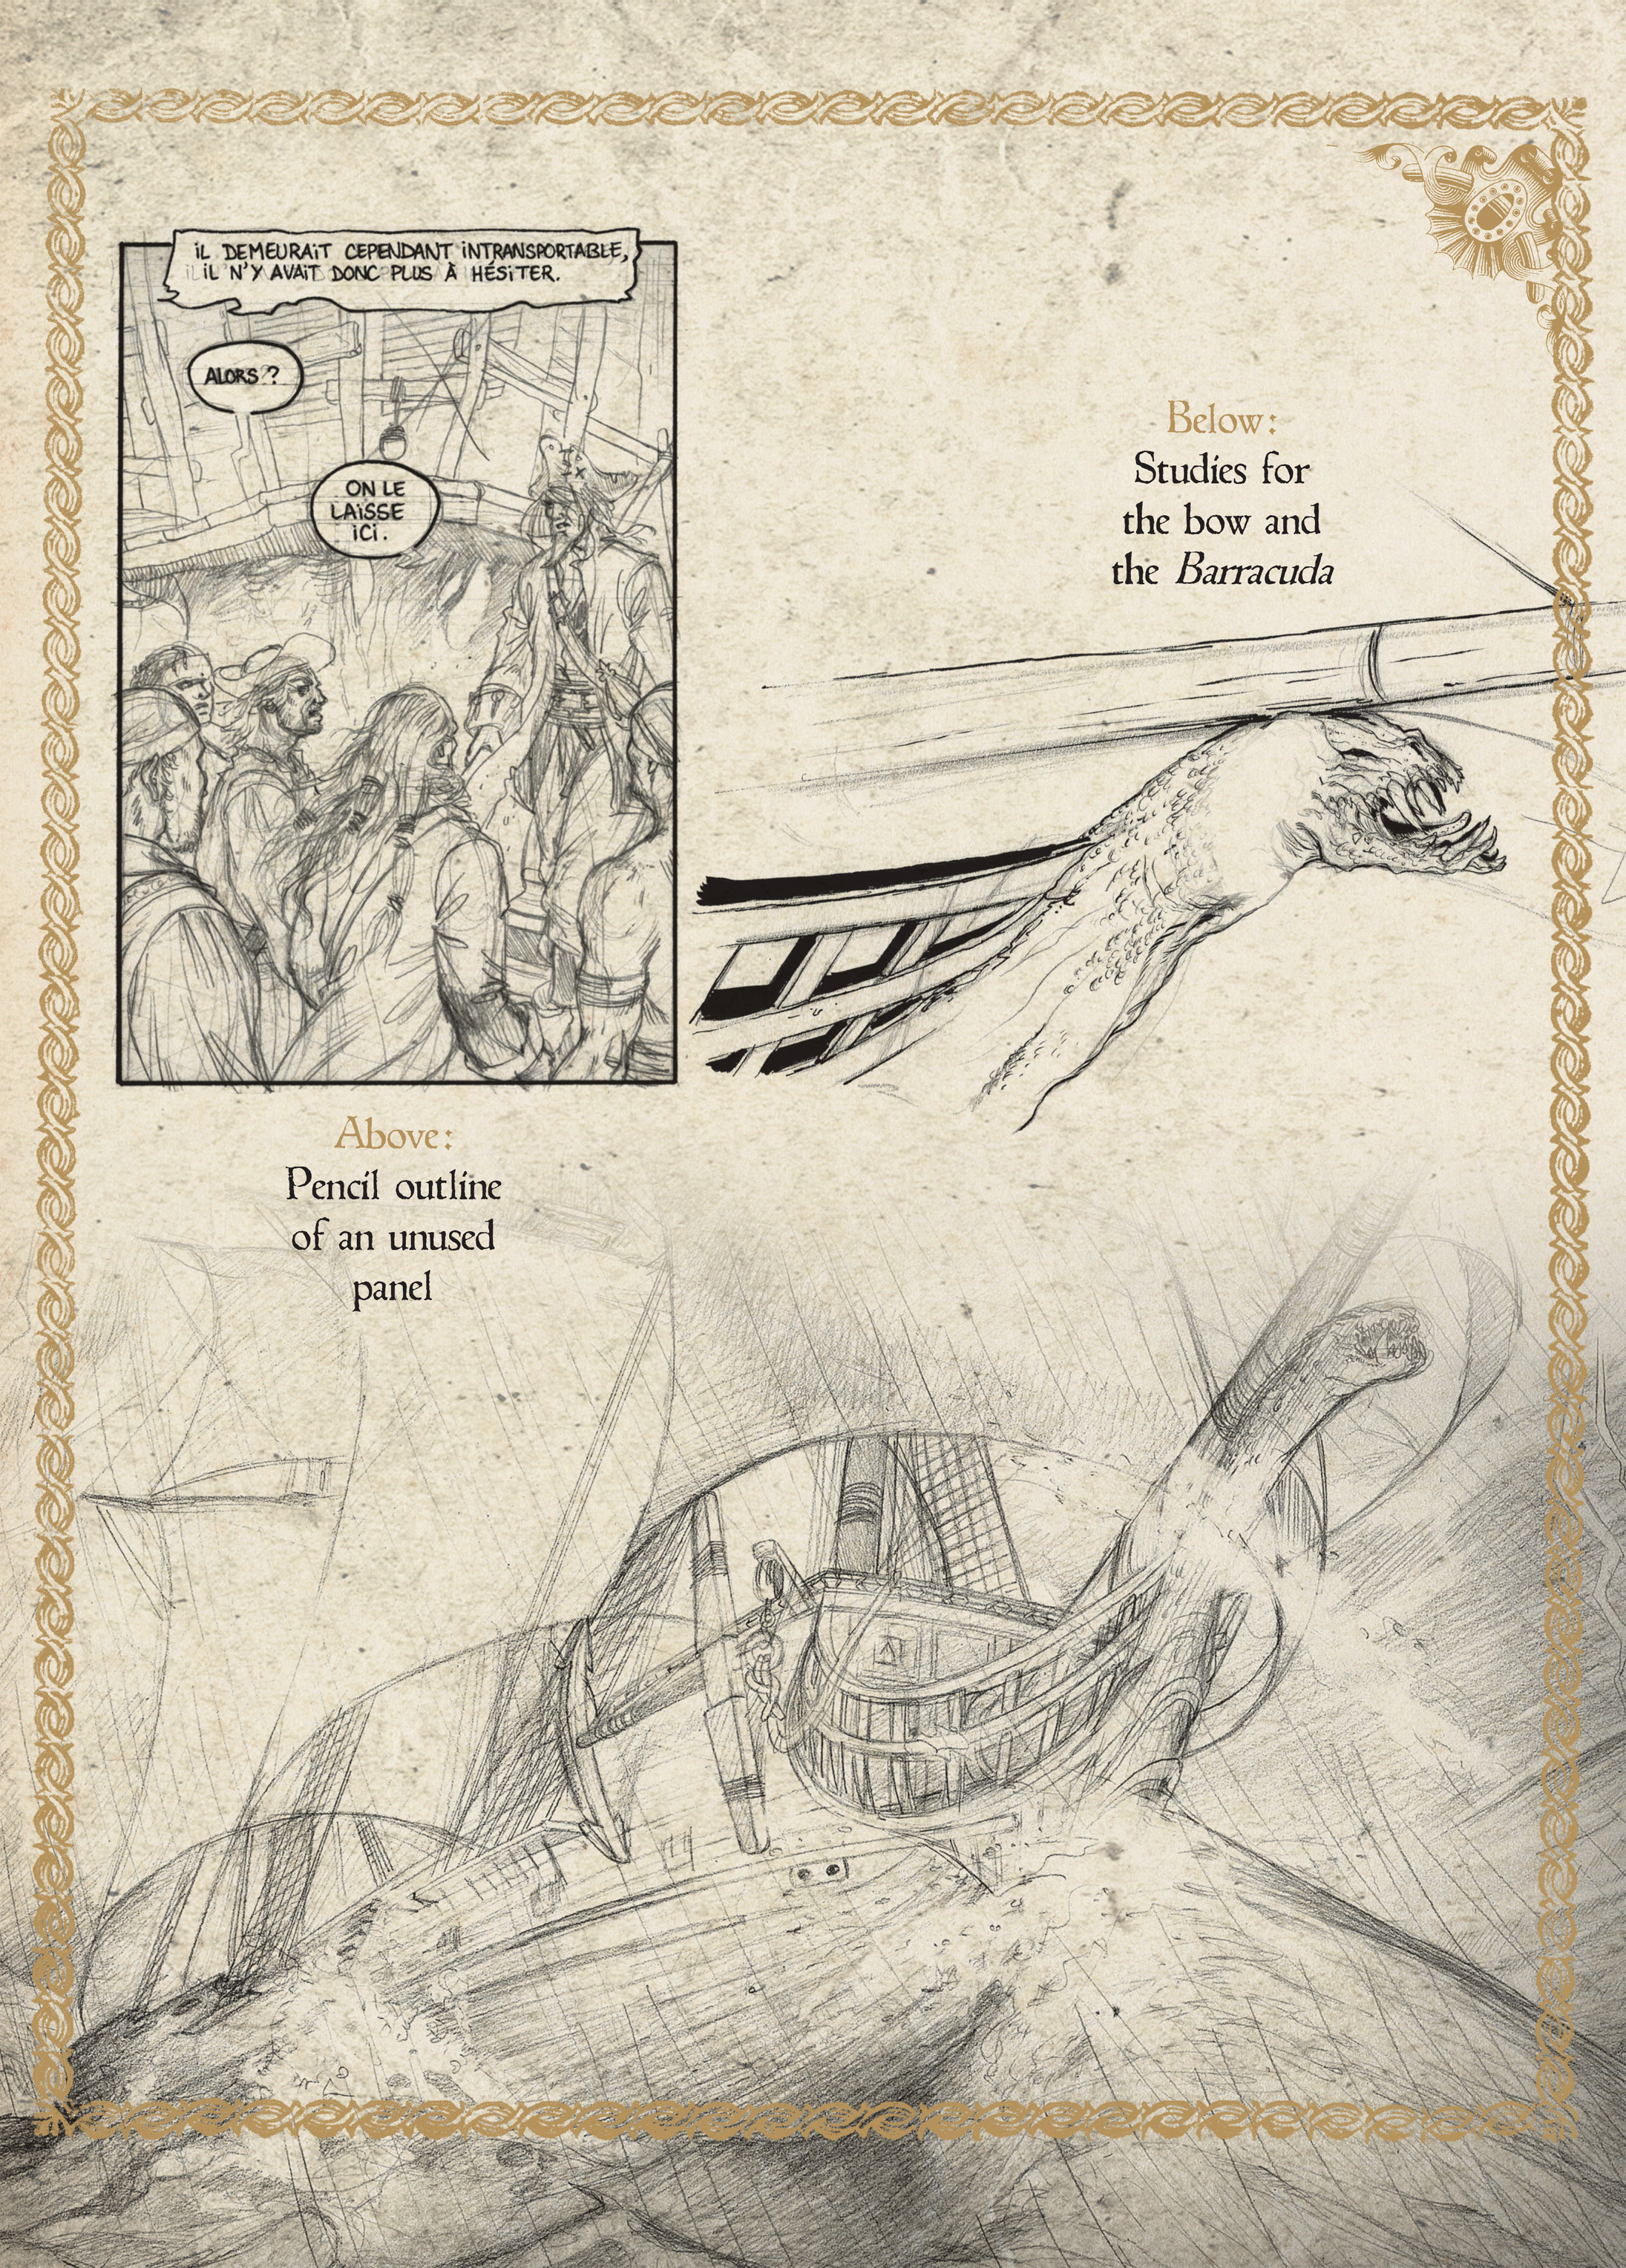 Read online Barracuda comic -  Issue #3 - 62